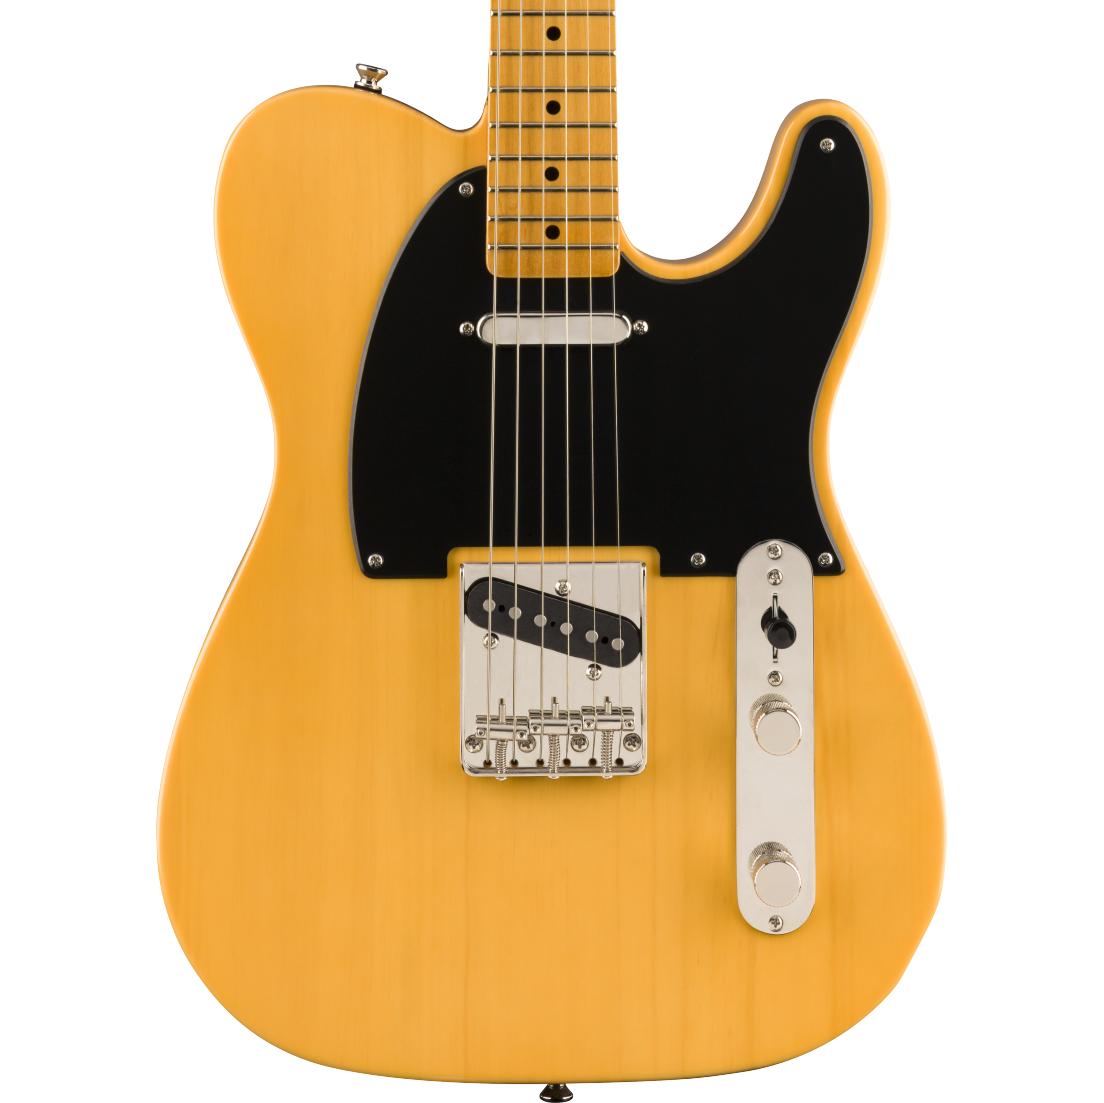 Squier Classic Vibe '50s Telecaster - Maple Fingerboard, Butterscotch Blonde